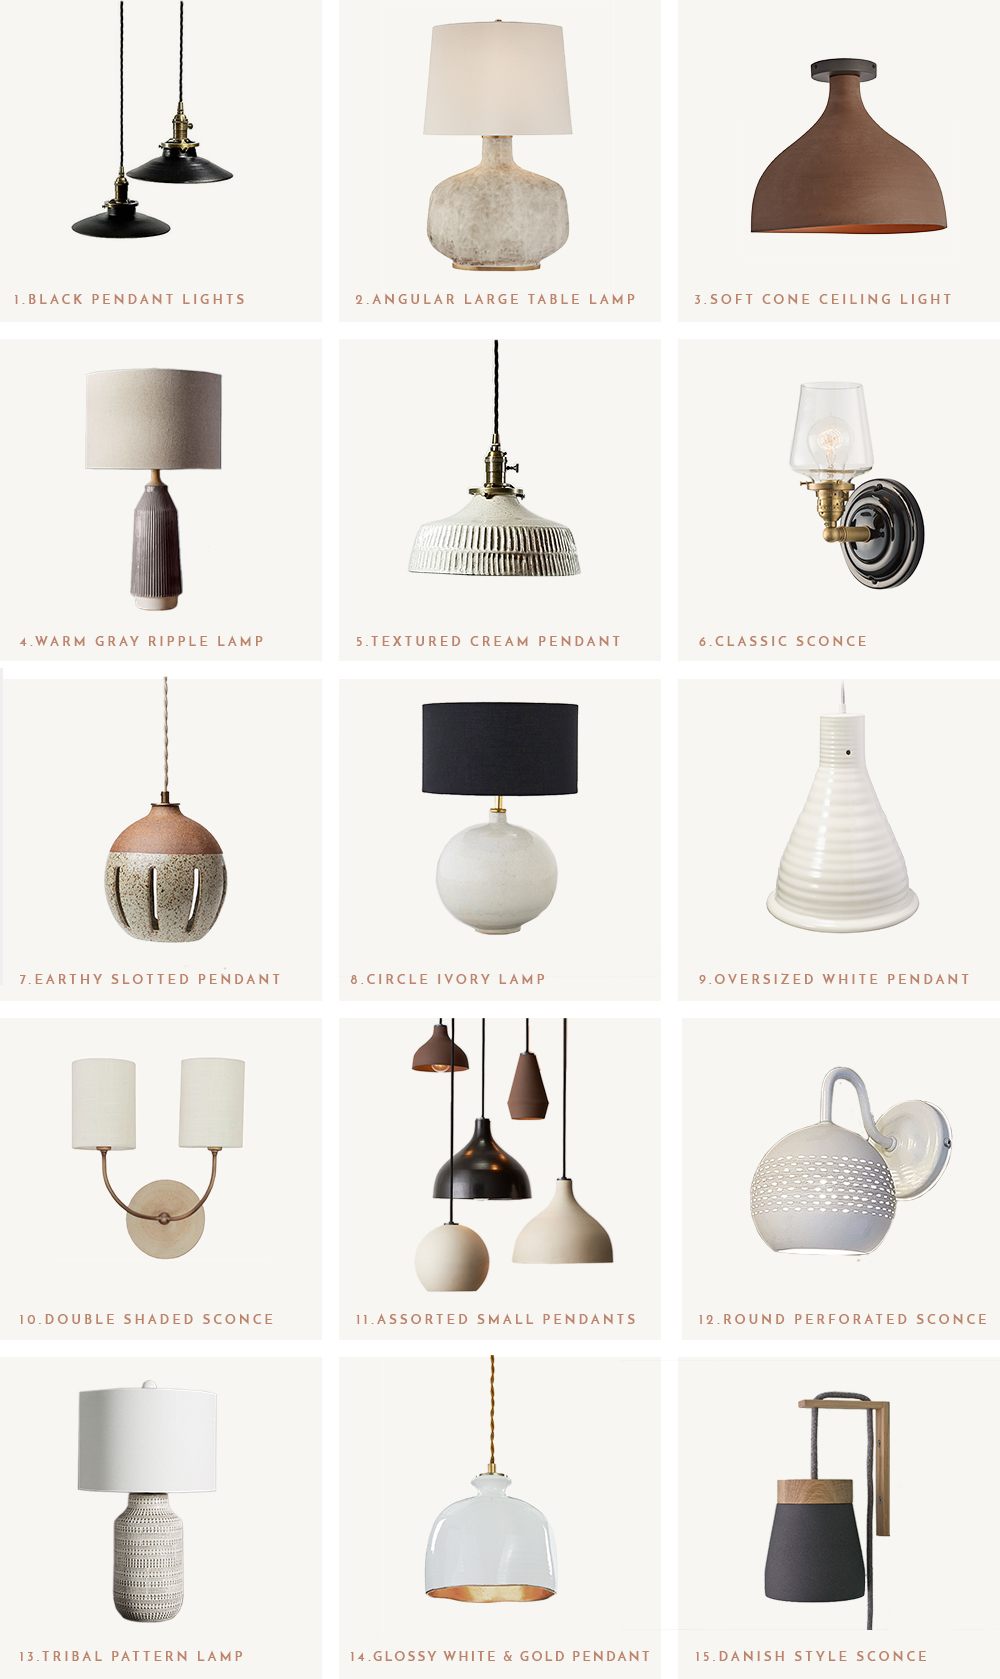 15 Unique Ceramic Light Fixtures | Heather Bullard